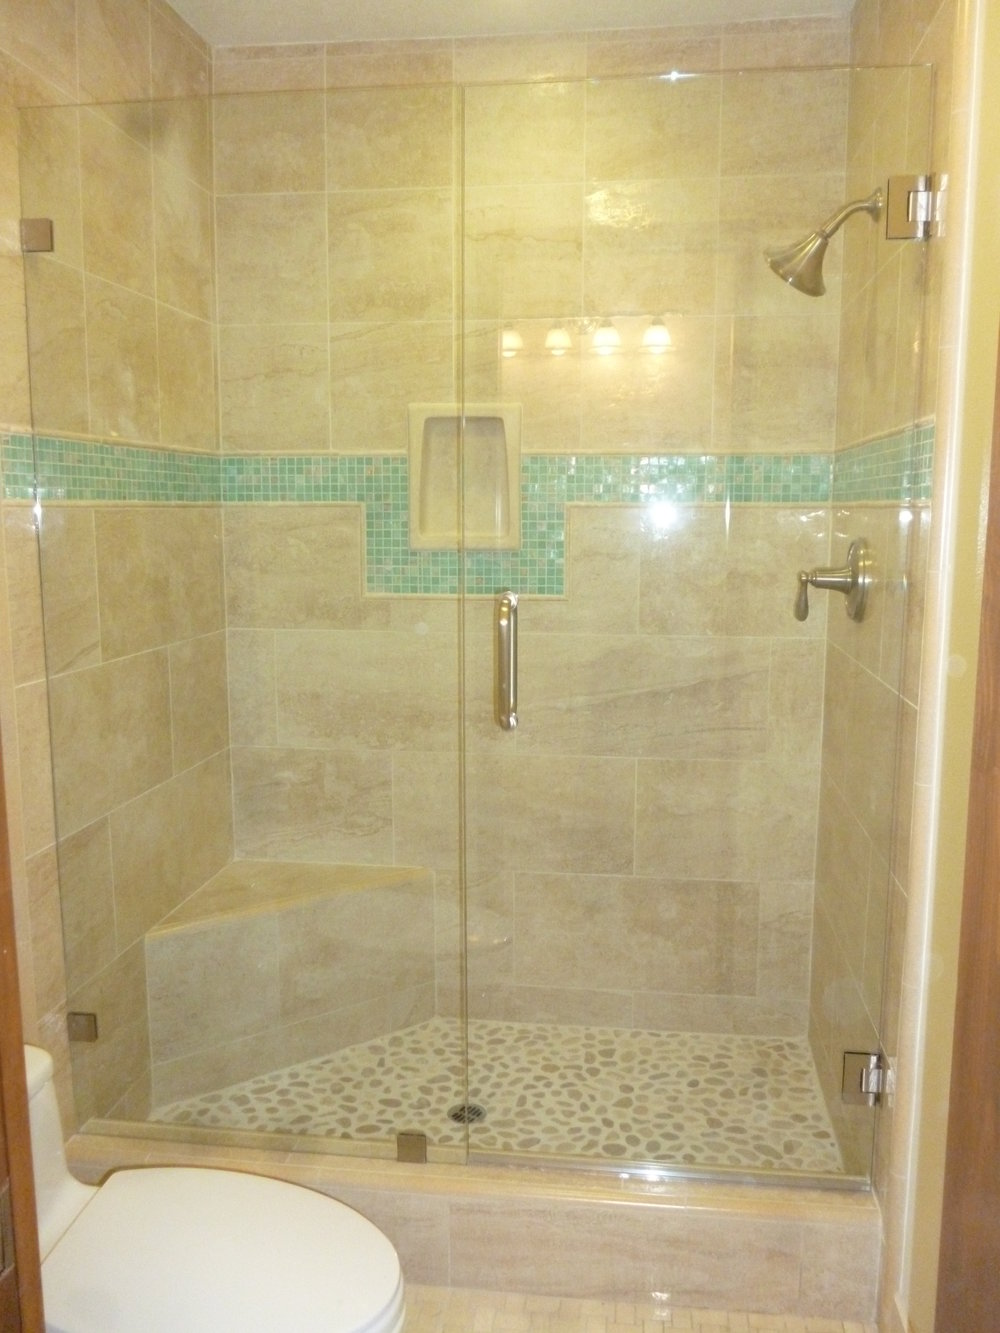 Shower-Doors-Residential-Photos-9.jpg